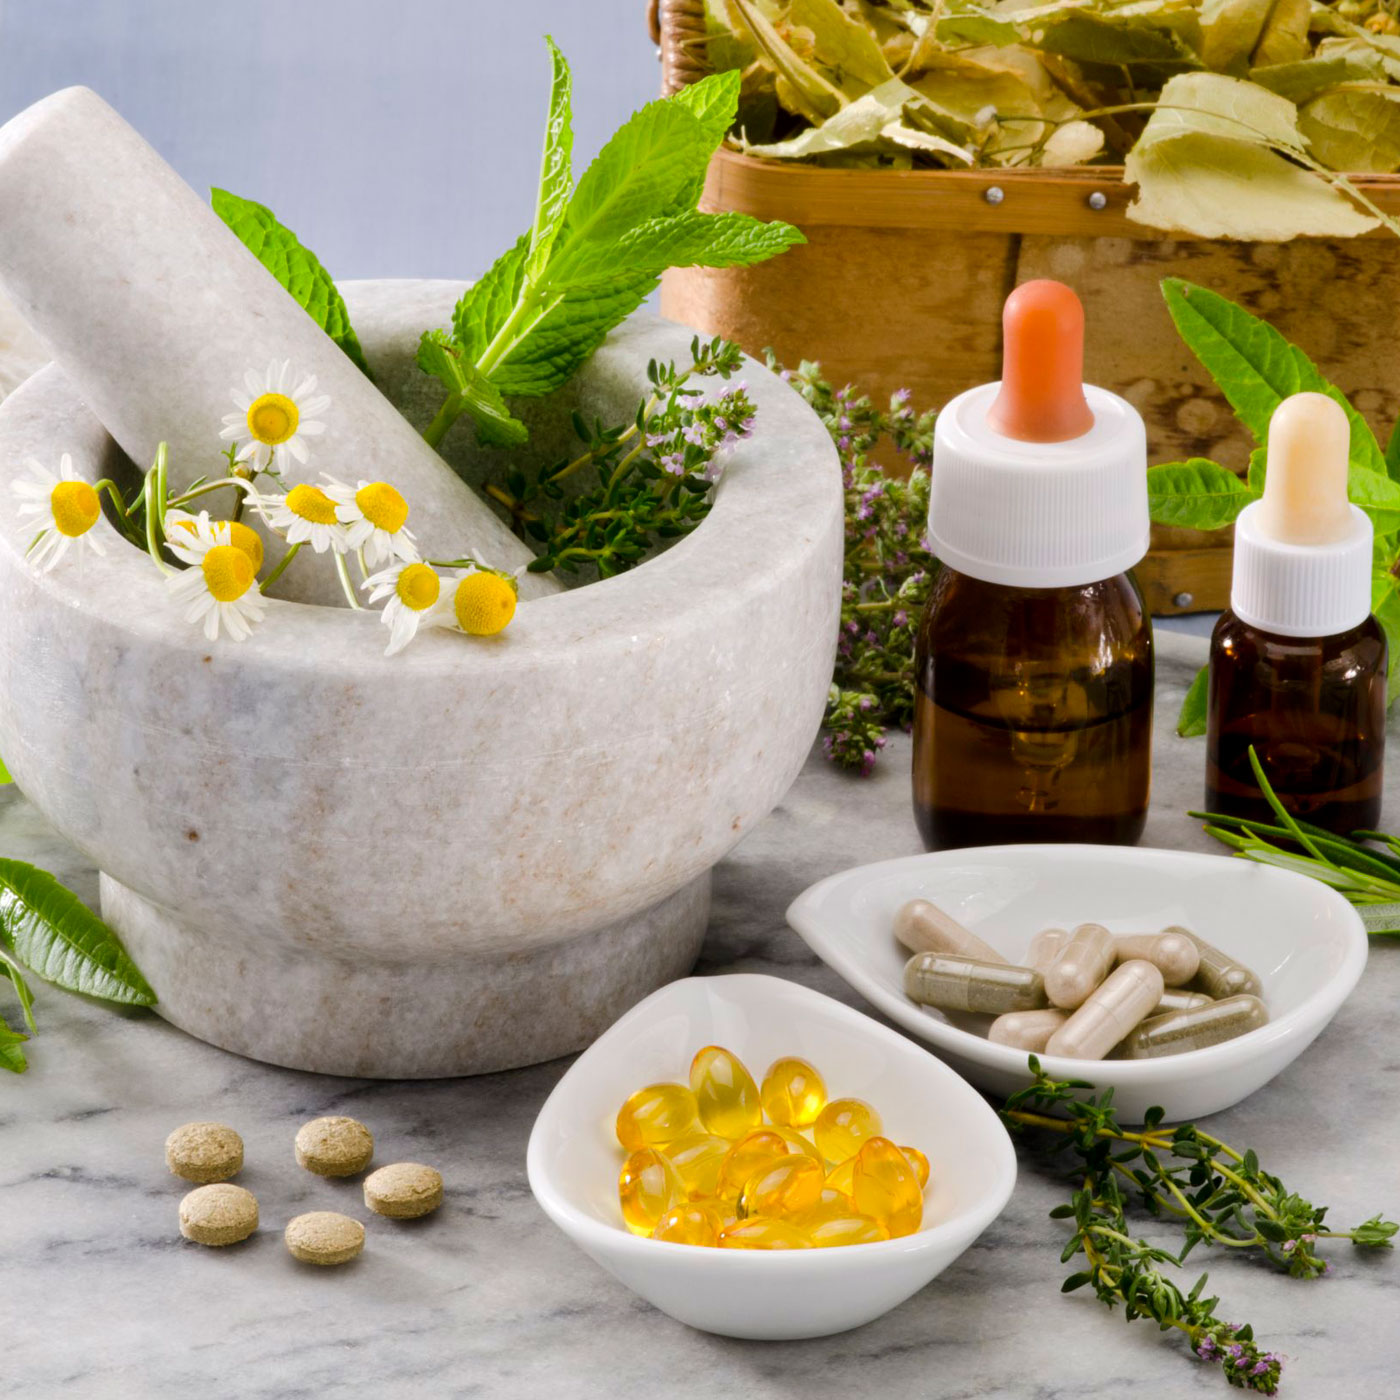 Essential Chiropractic and Healthcare Clinic - Naturopathy and Alternative Medicine Explained